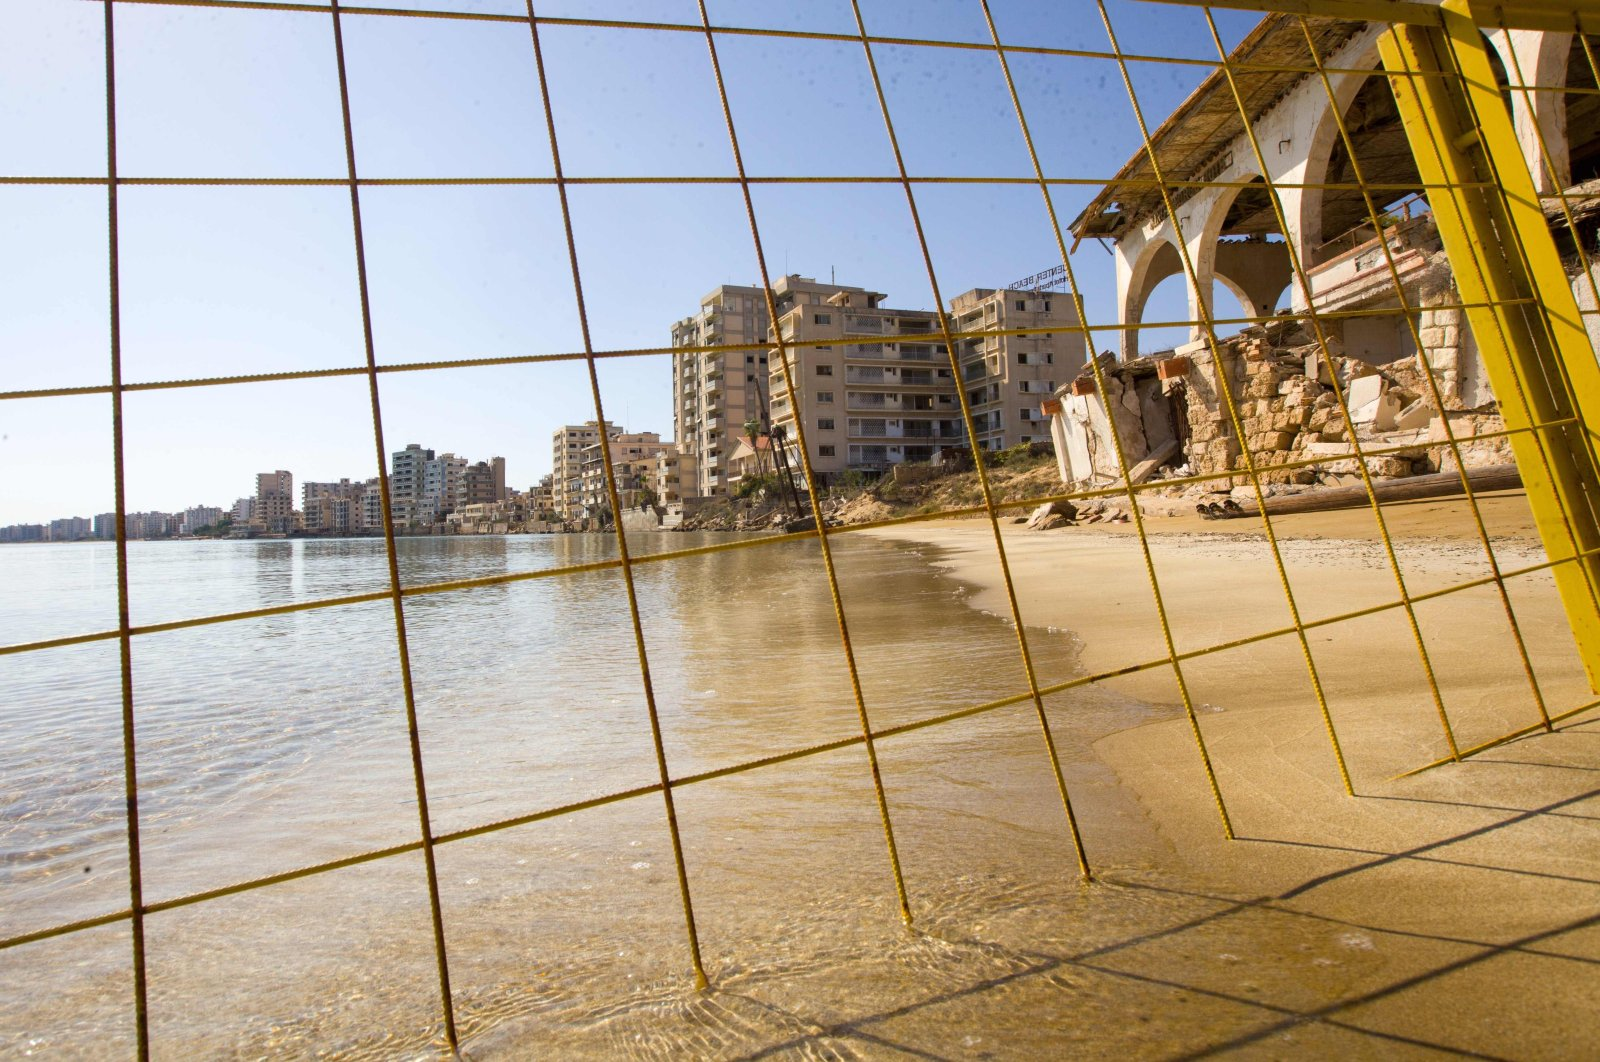 Derelict hotels, restaurants and residential buildings remain abandoned at the fenced-off beachfront eastern town of Varosha (Maraş), in Northern Cyprus, on Oct. 14, 2020. (AFP)